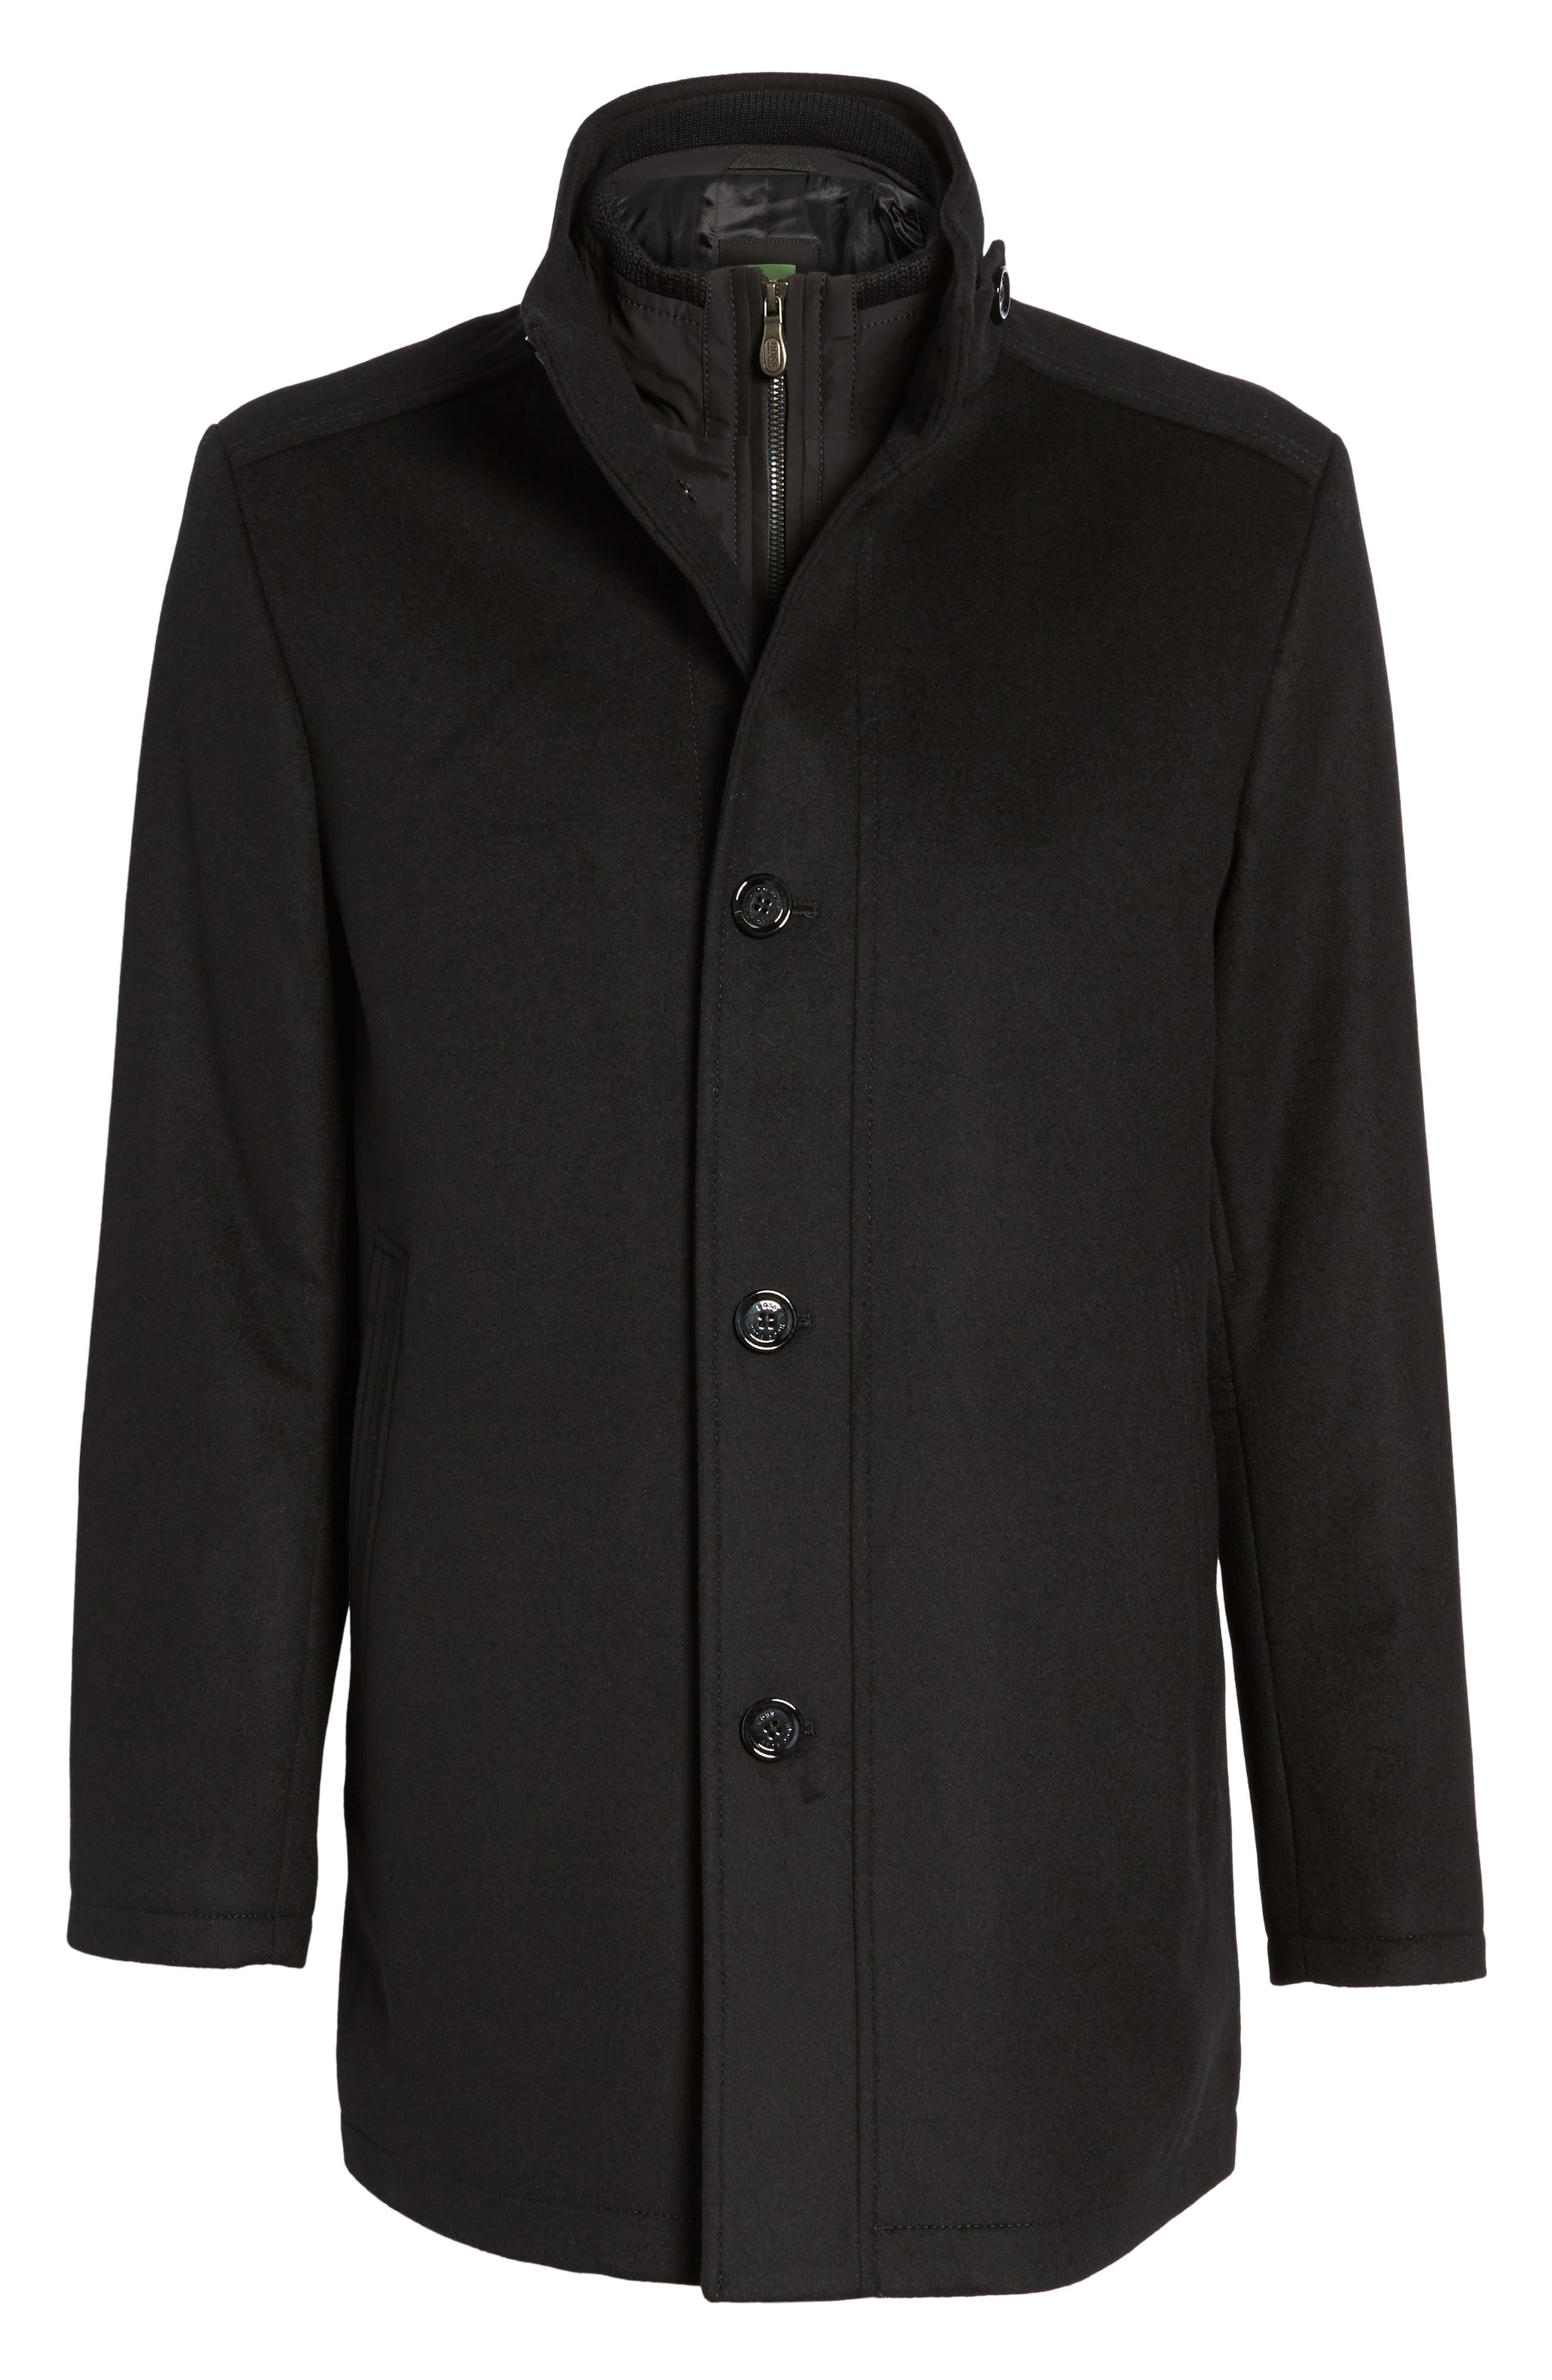 C-Coxtan Wool Blend Coat with Insert,                             Alternate thumbnail 5, color,                             Black